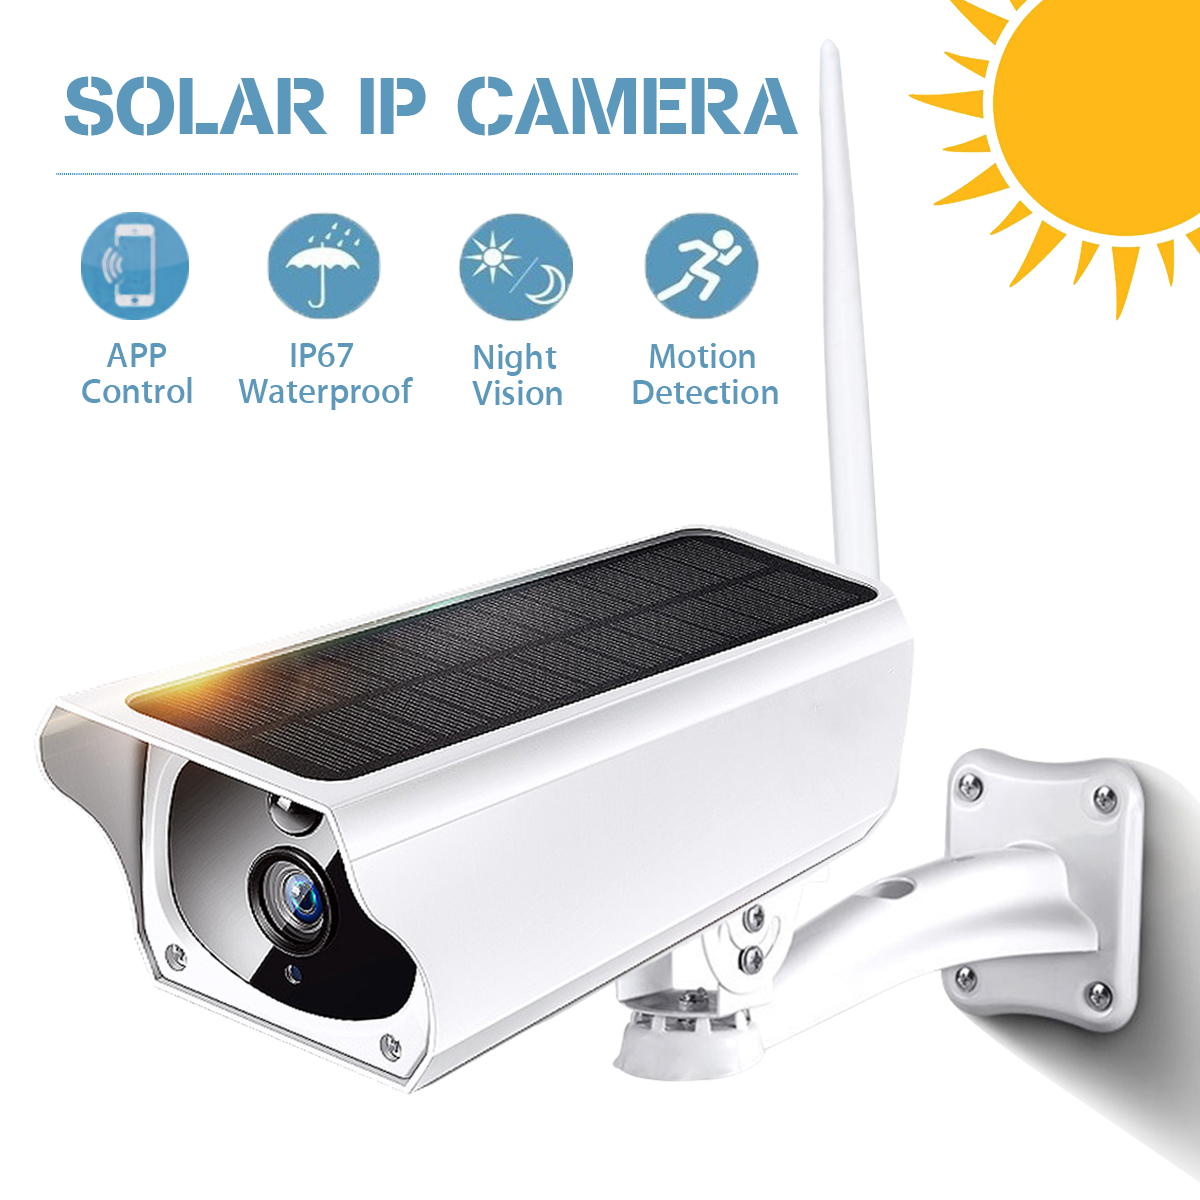 1080P Solar WiFi IP Camera Outdoor Battery Wireless Infrared Security Camera PIR Motion Detection Surveillance CCTV Home Monitor